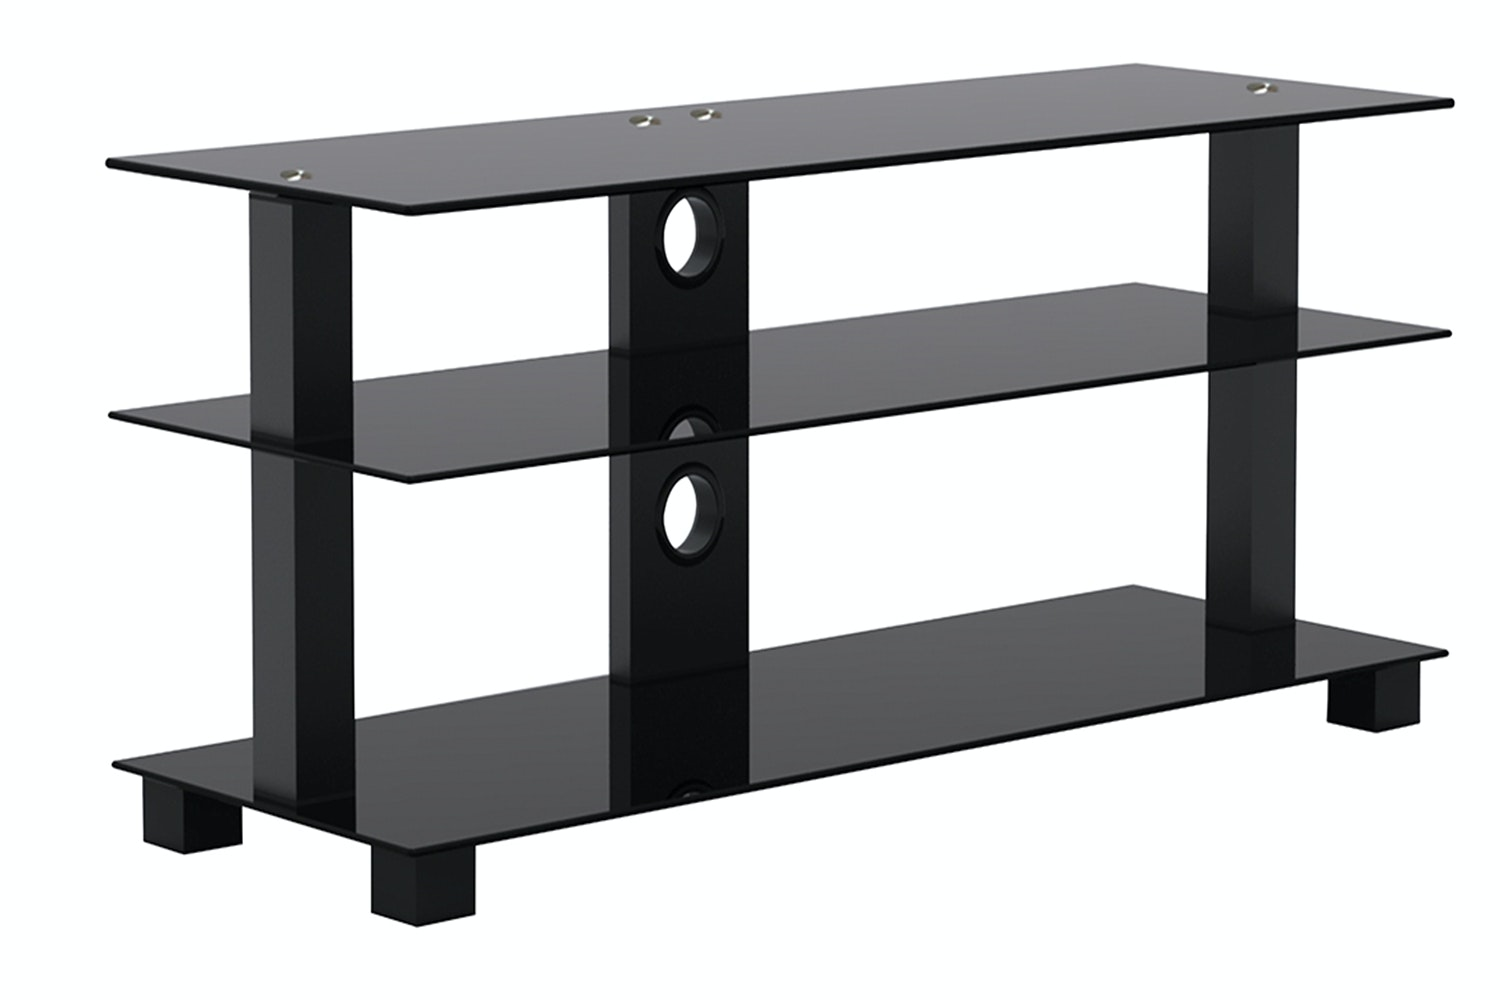 Kaiapoi 3 Shelf 32-46 TV Table Black by Pudney and Lee